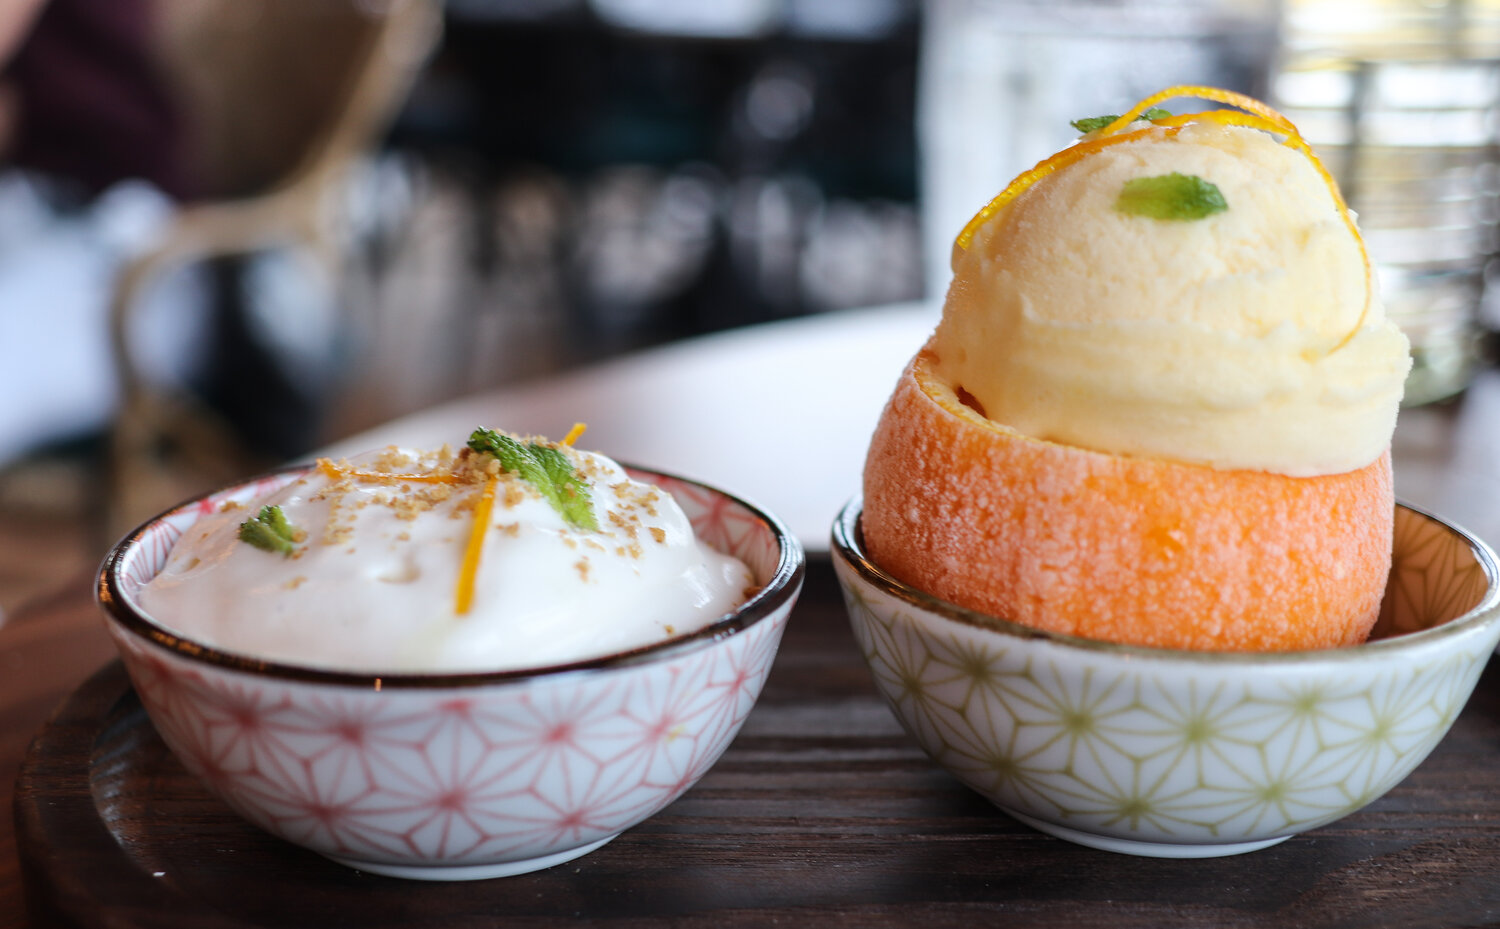 Lighter sweets include panna cotta and this…refreshing orange sorbet with candied orange peel, micro mint, and vanilla cream. Mix, match, have fun. It's a creamsicle reimagined.